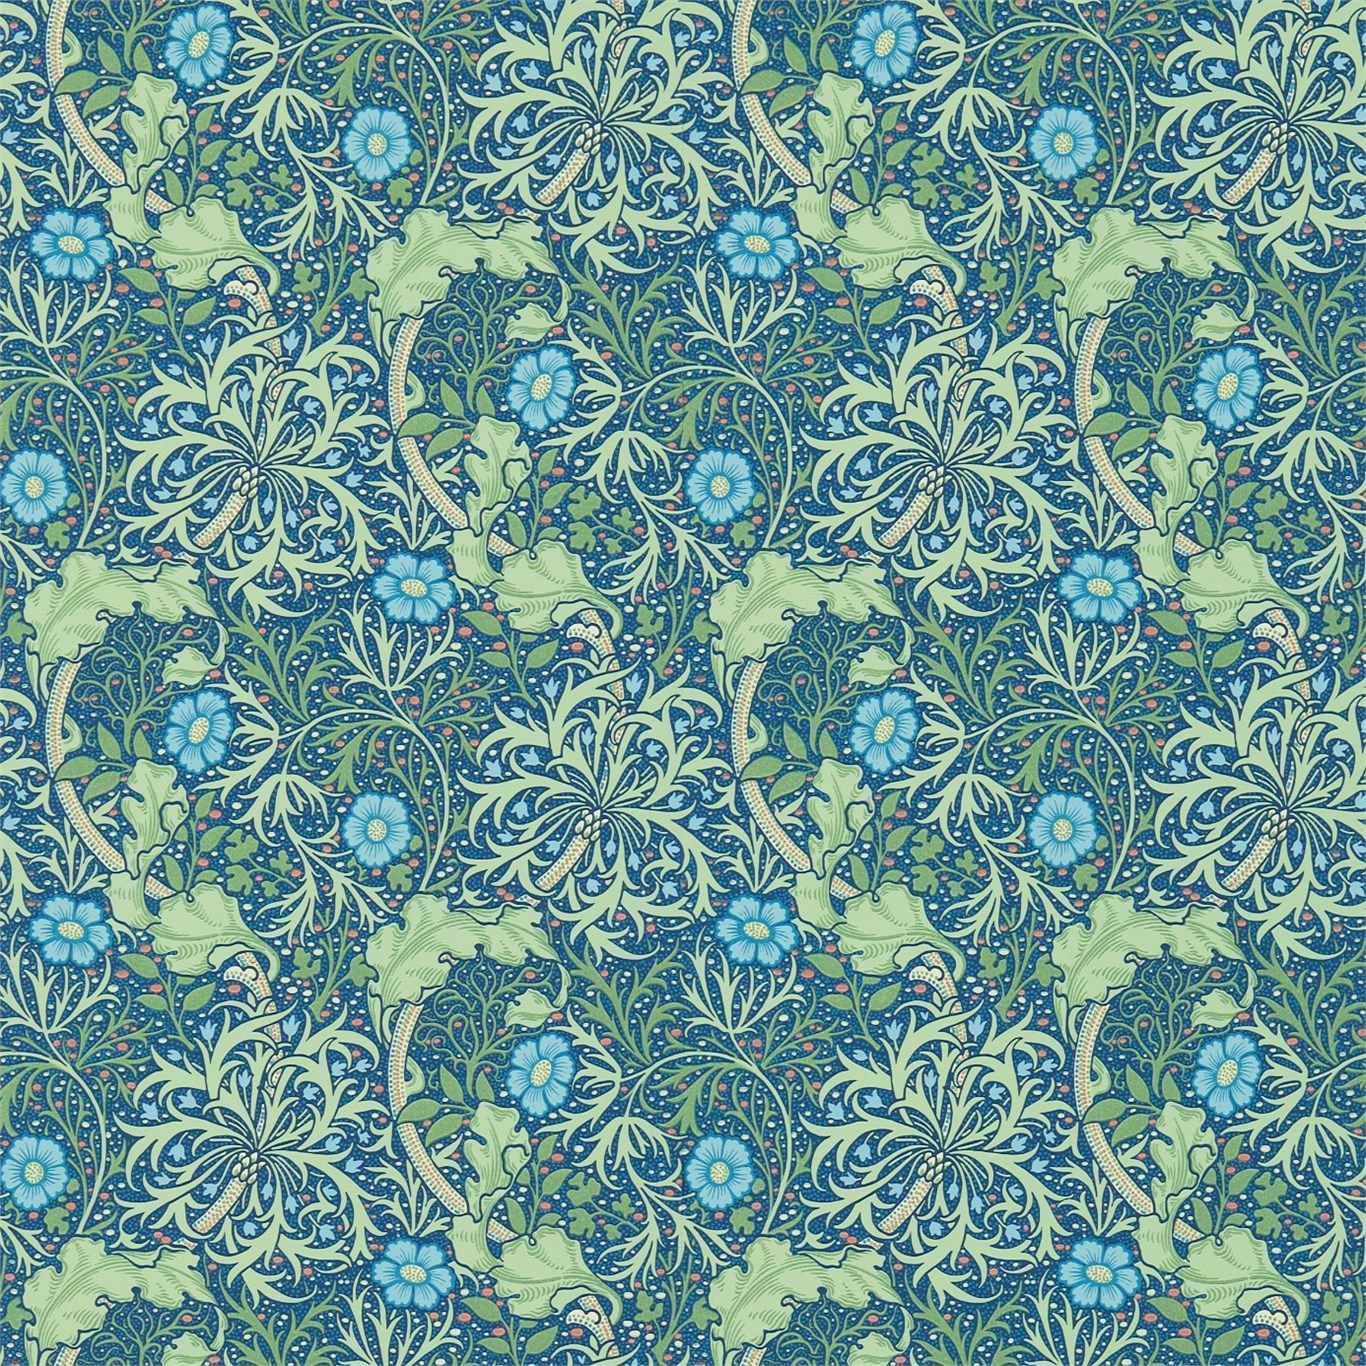 Morris & Co Seaweed Wallpaper Morris wallpapers, Poppy